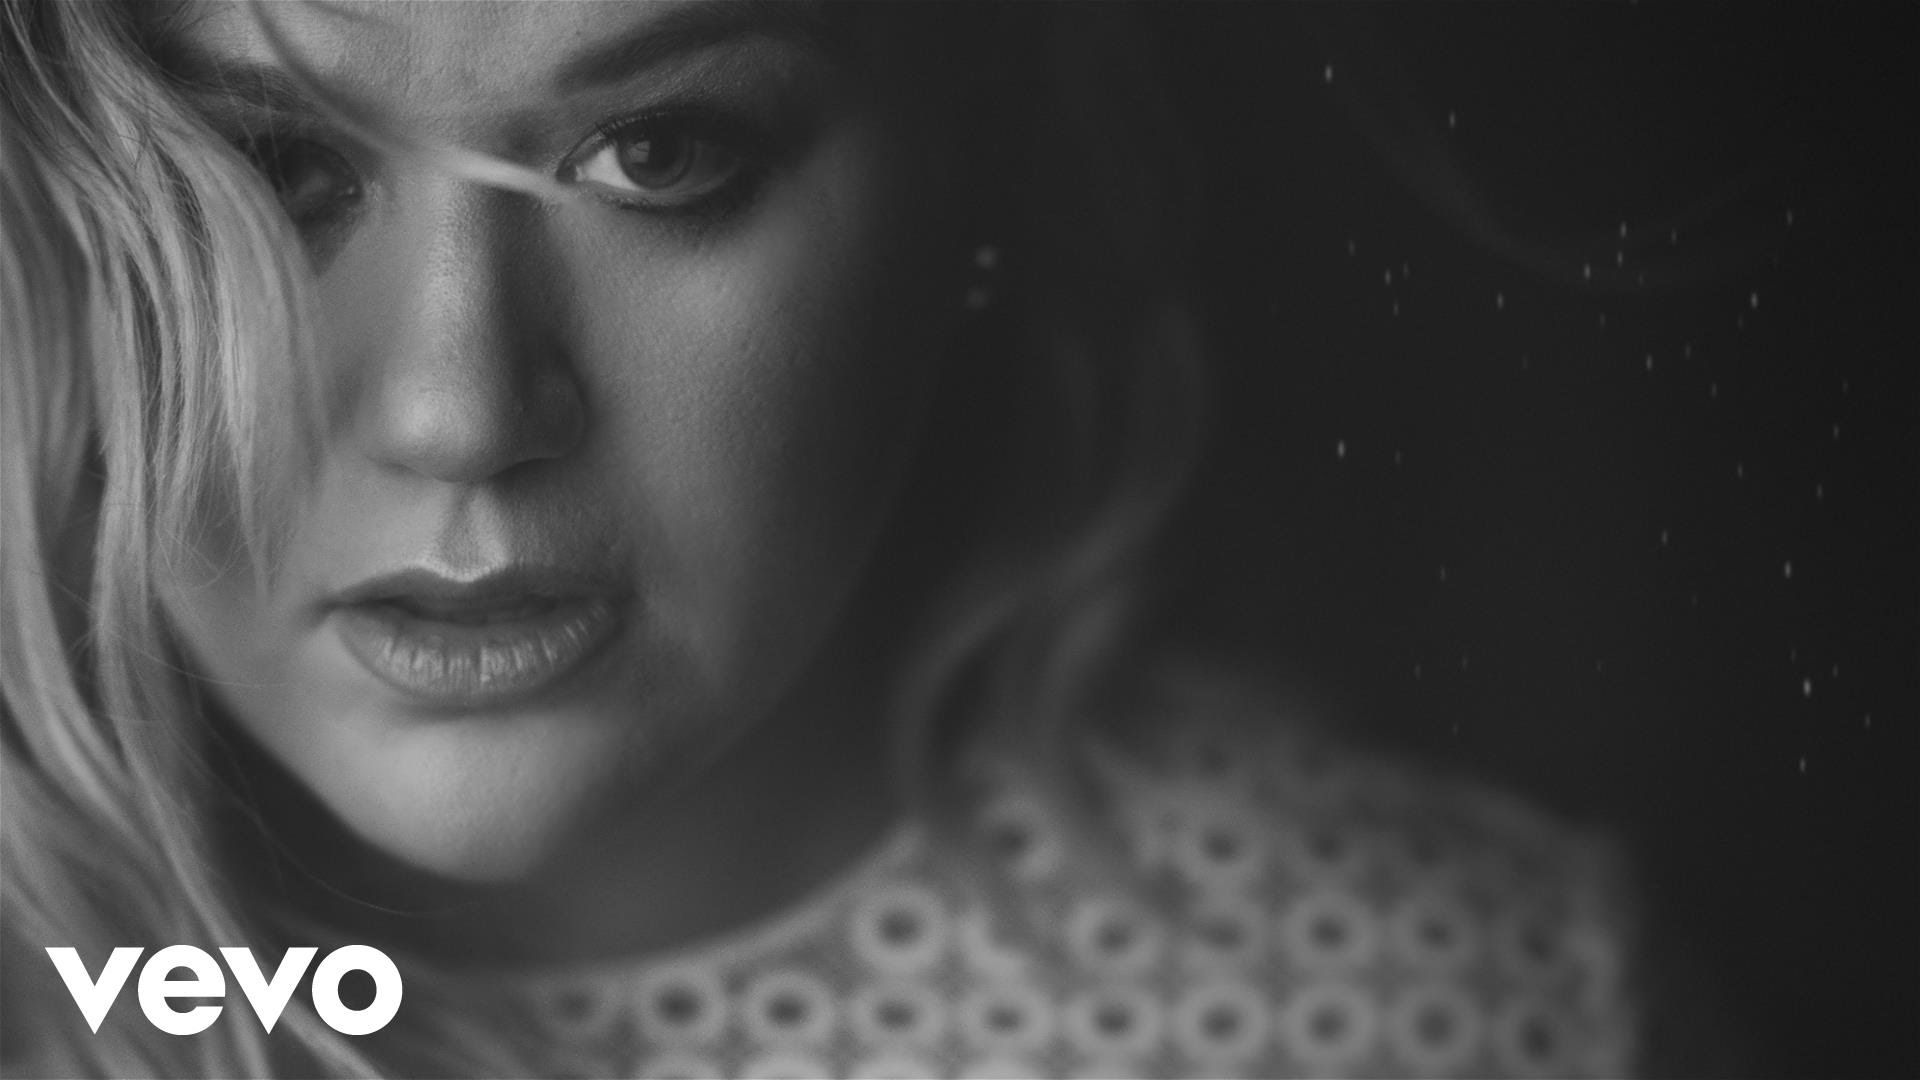 Grammy History: Kelly Clarkson earns most noms for Pop Vocal Album ...